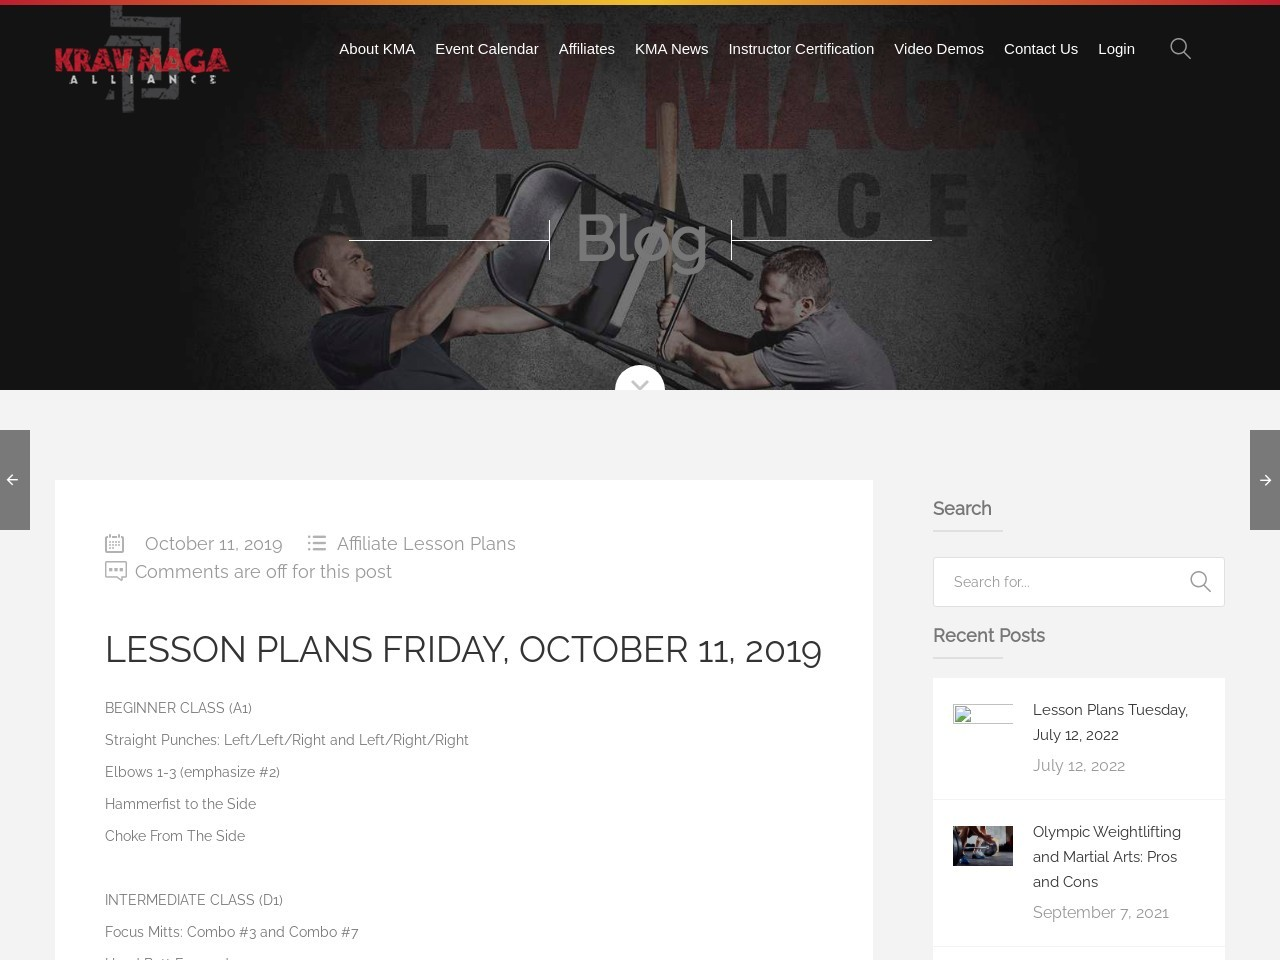 Lesson Plans Friday, October 11, 2019